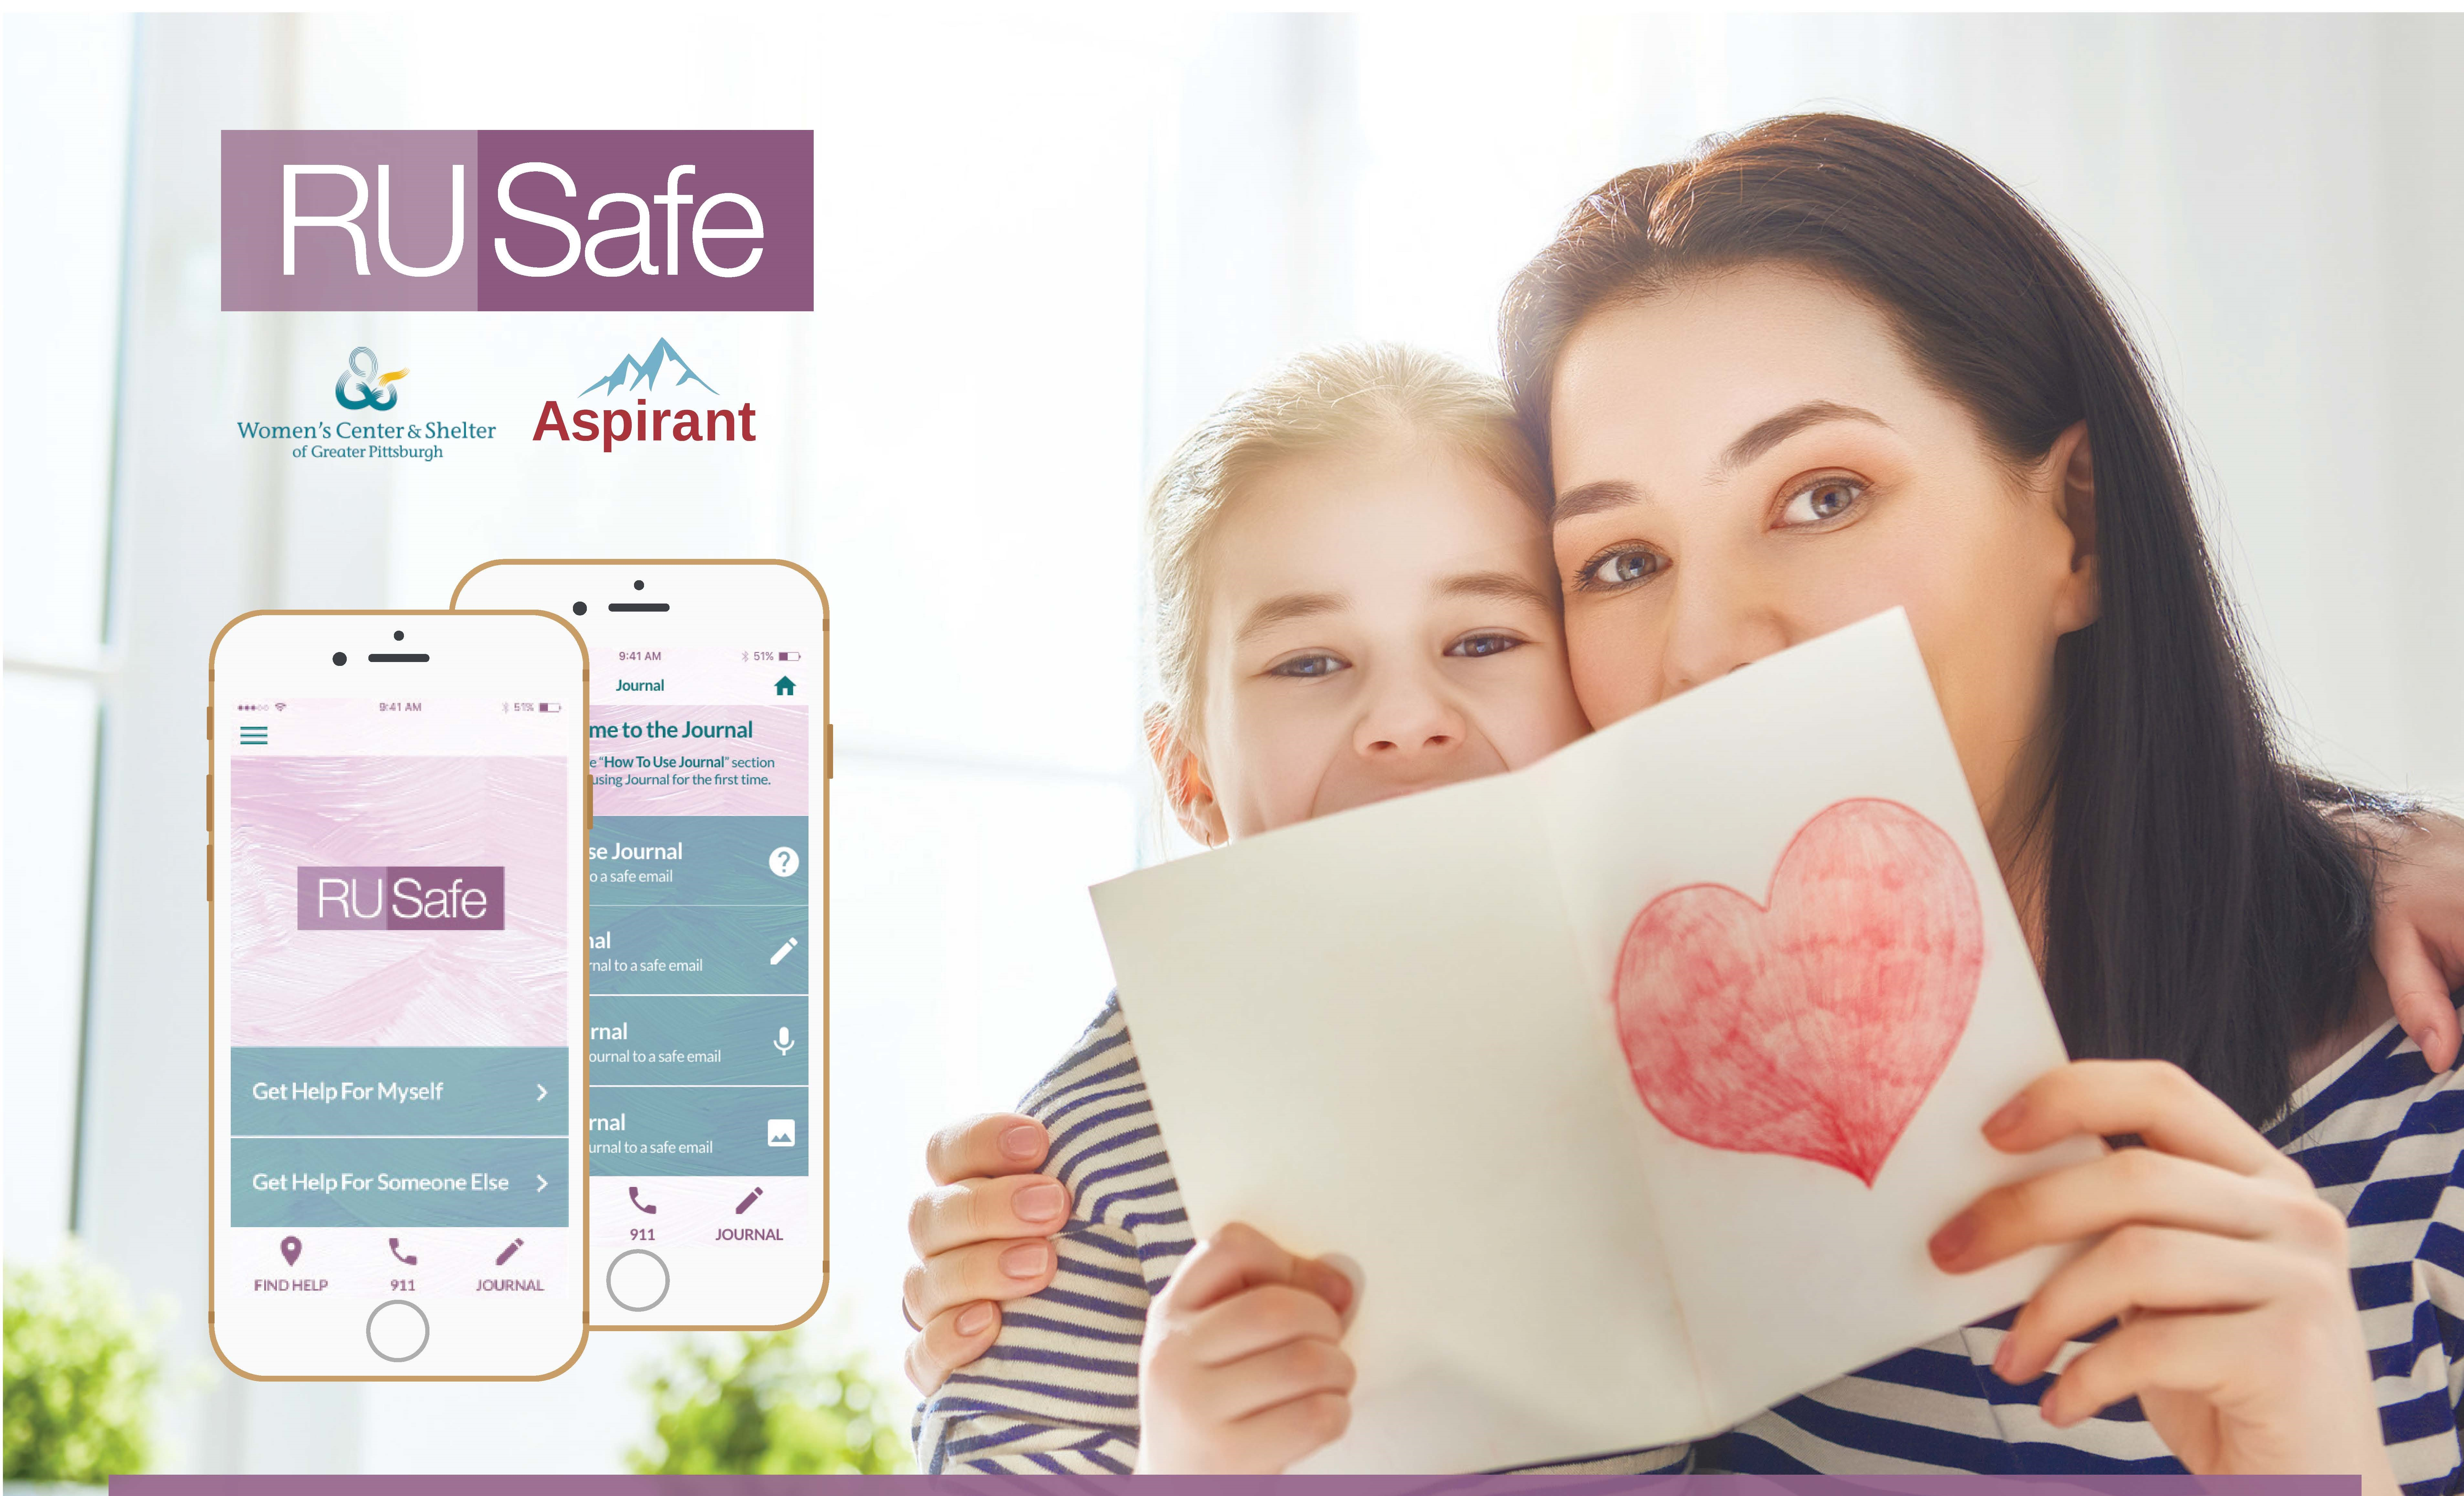 Aspirant Connection of Hope RUSafe App 2